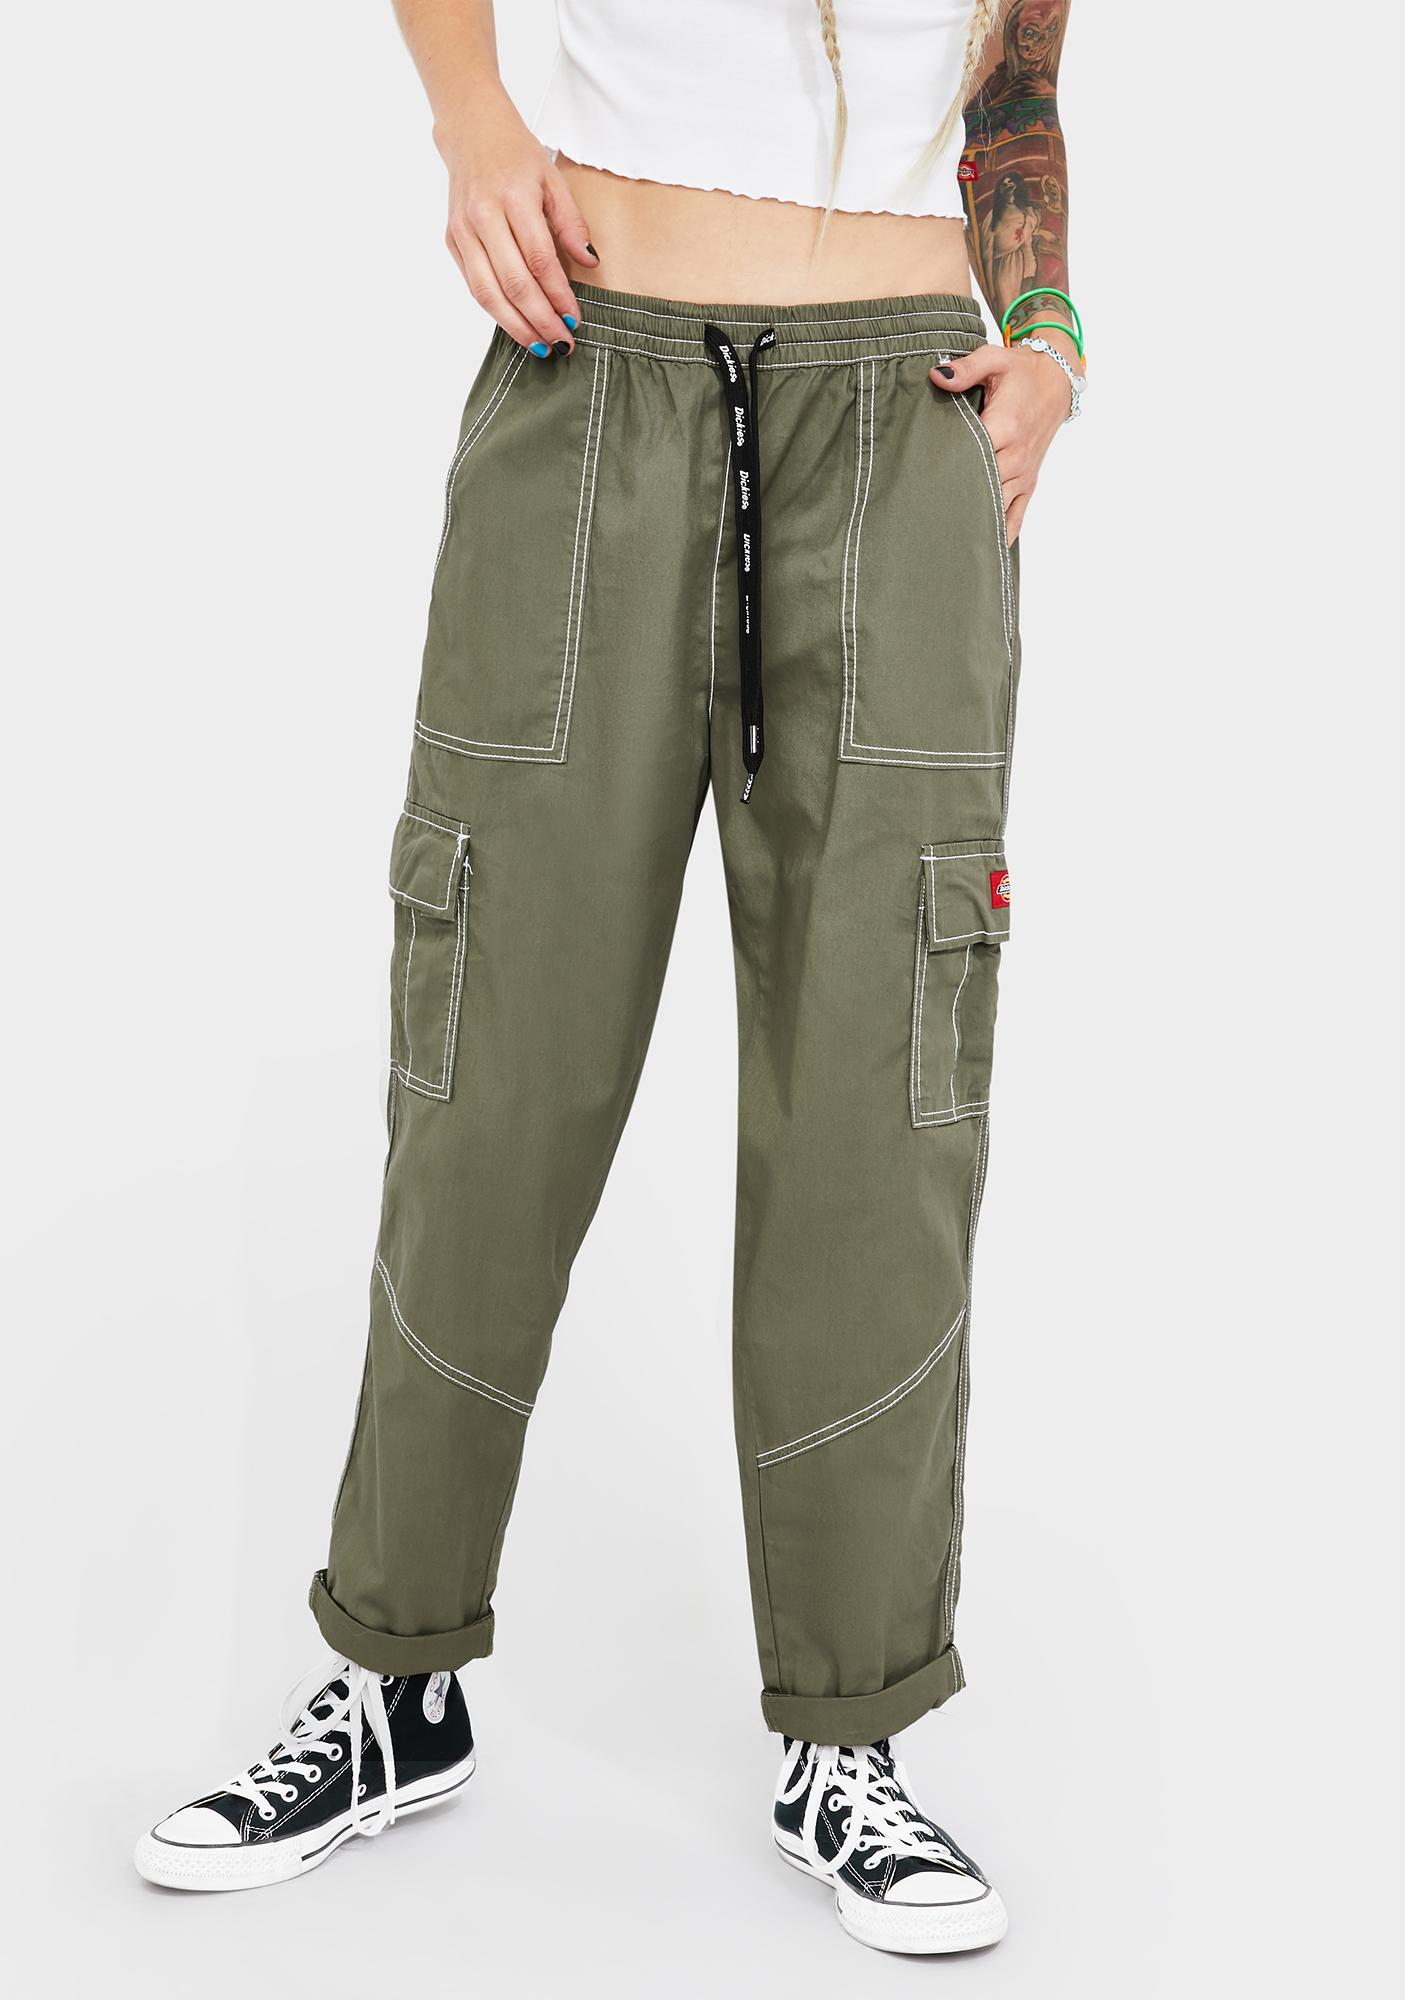 Dickies Girl Olive Cuffed Cargo Pants